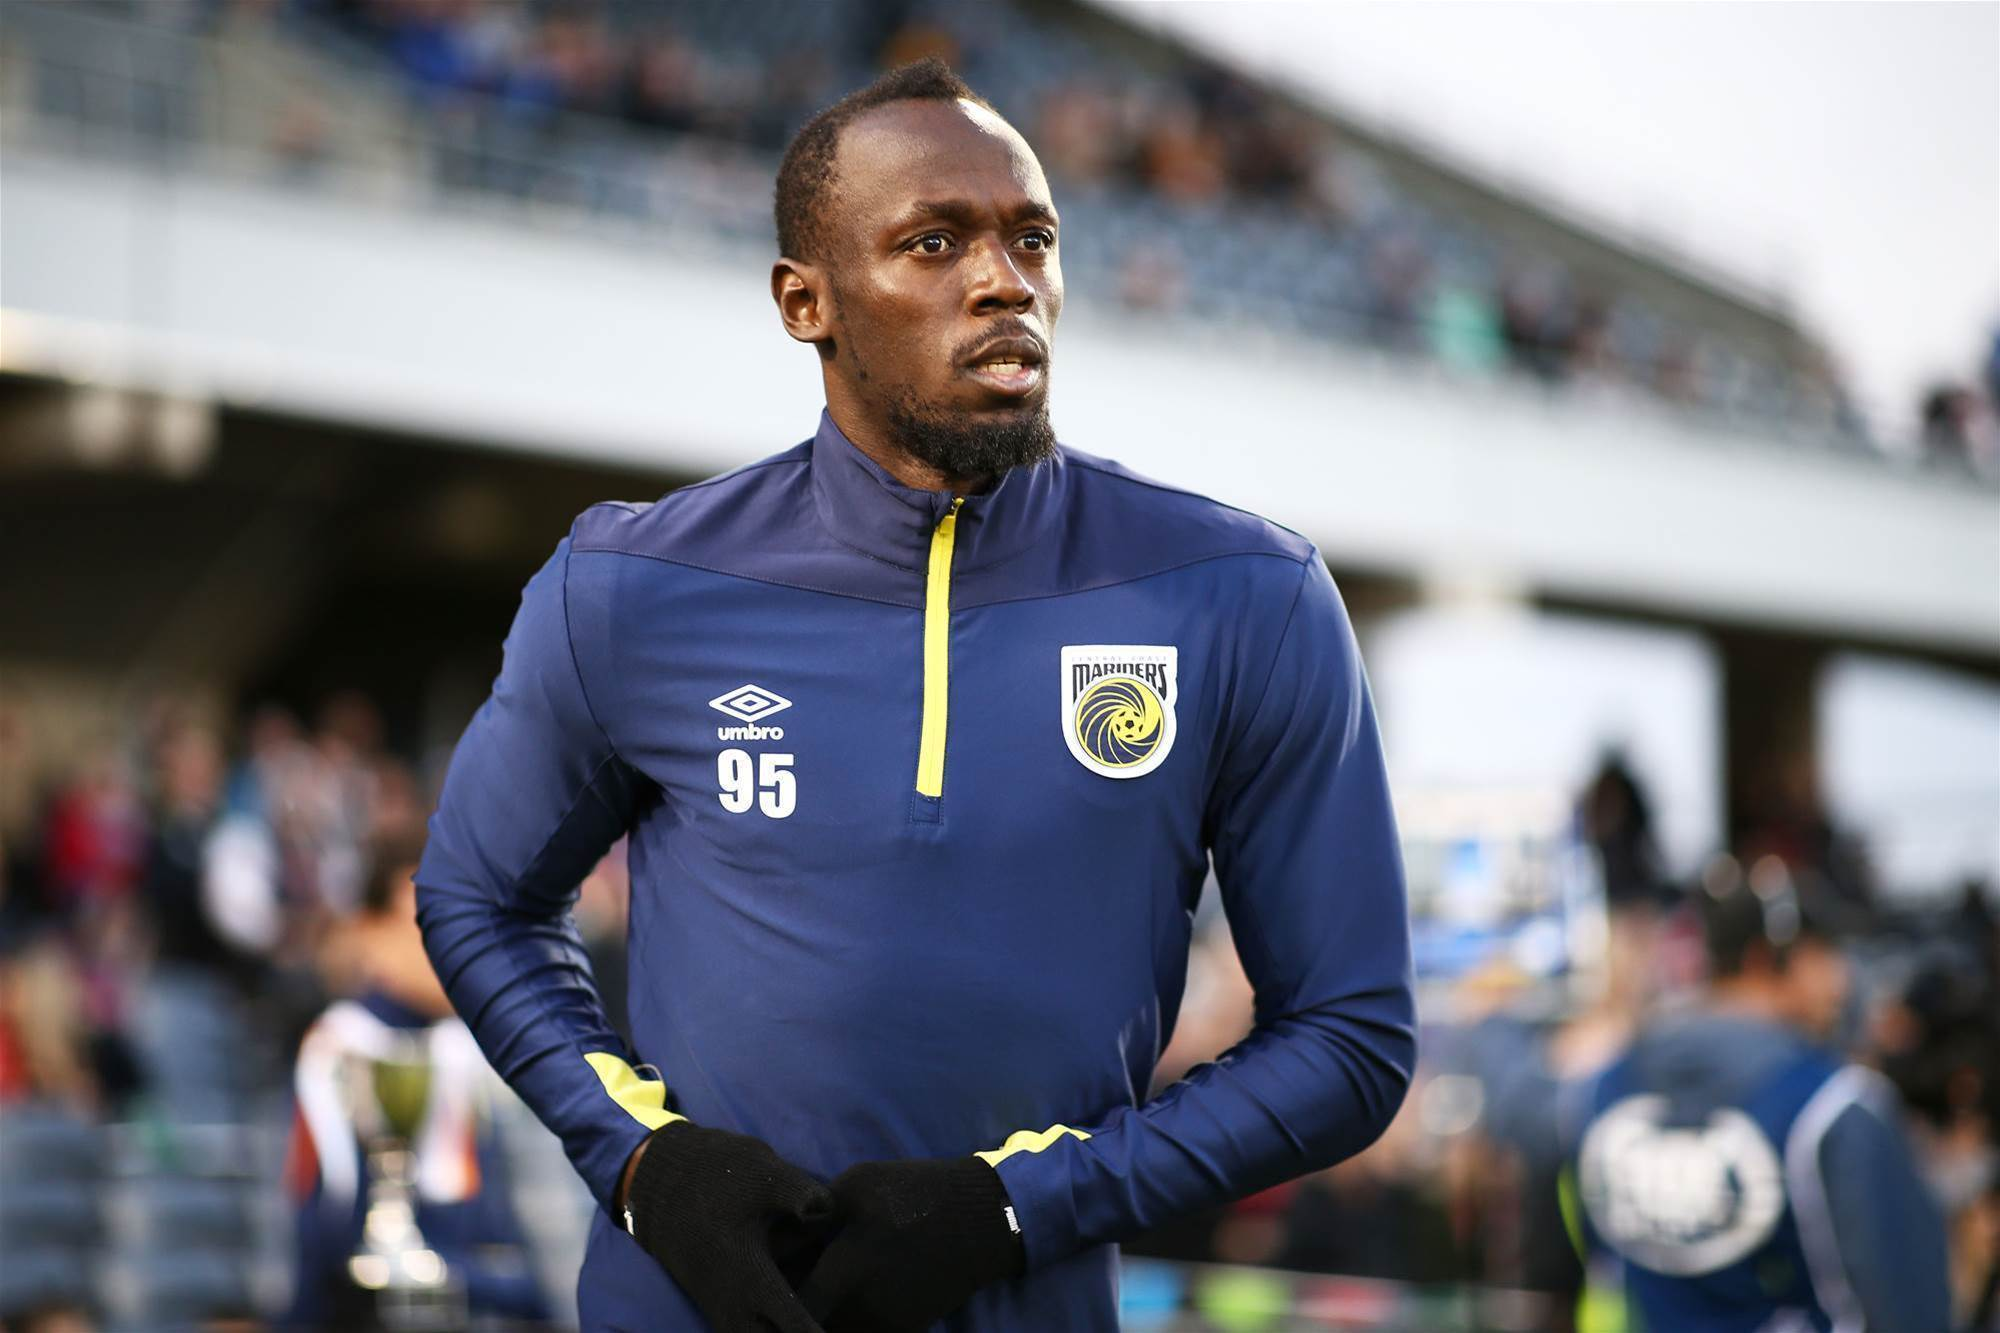 Usain Bolt's Mariners D-Day